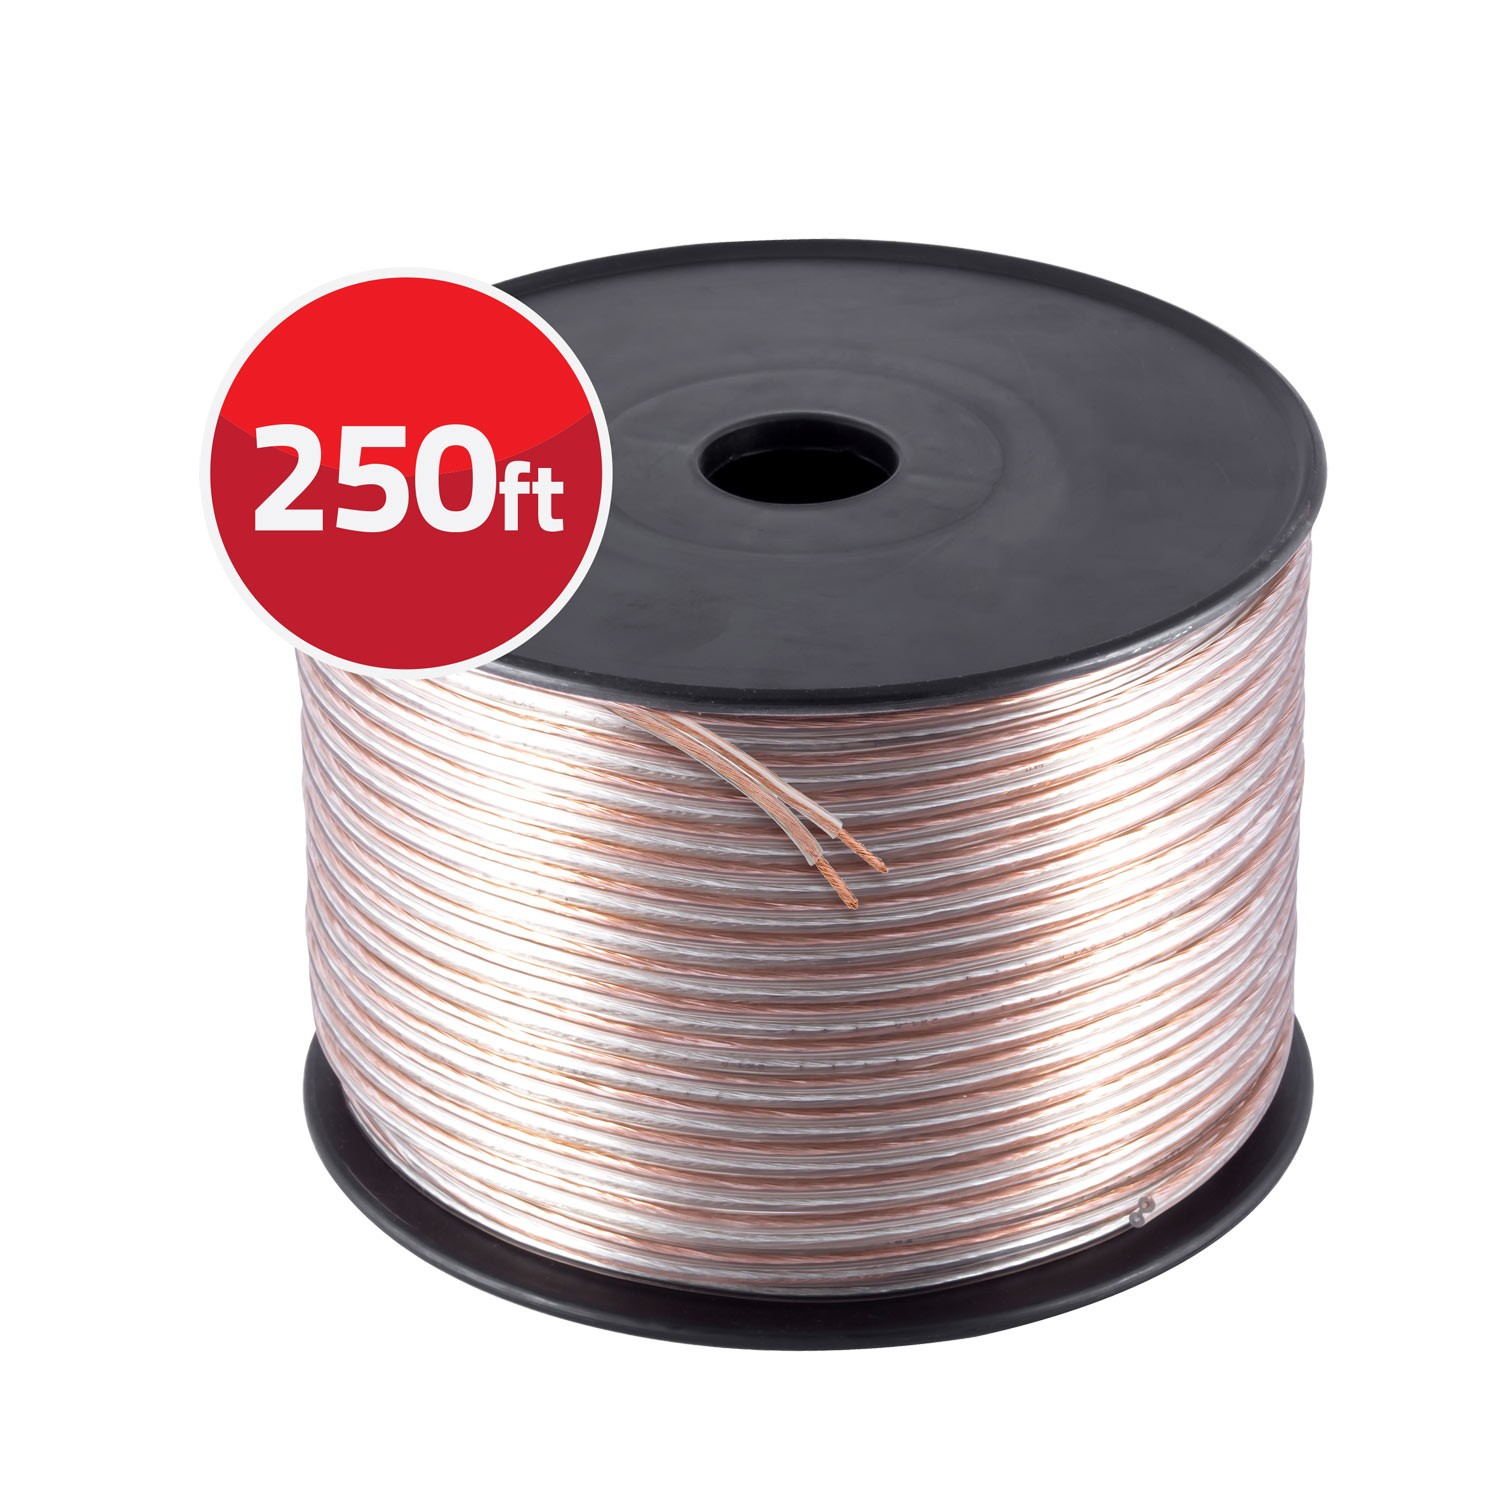 250 feet of Speaker Wire for Fluance Home Theater Speakers